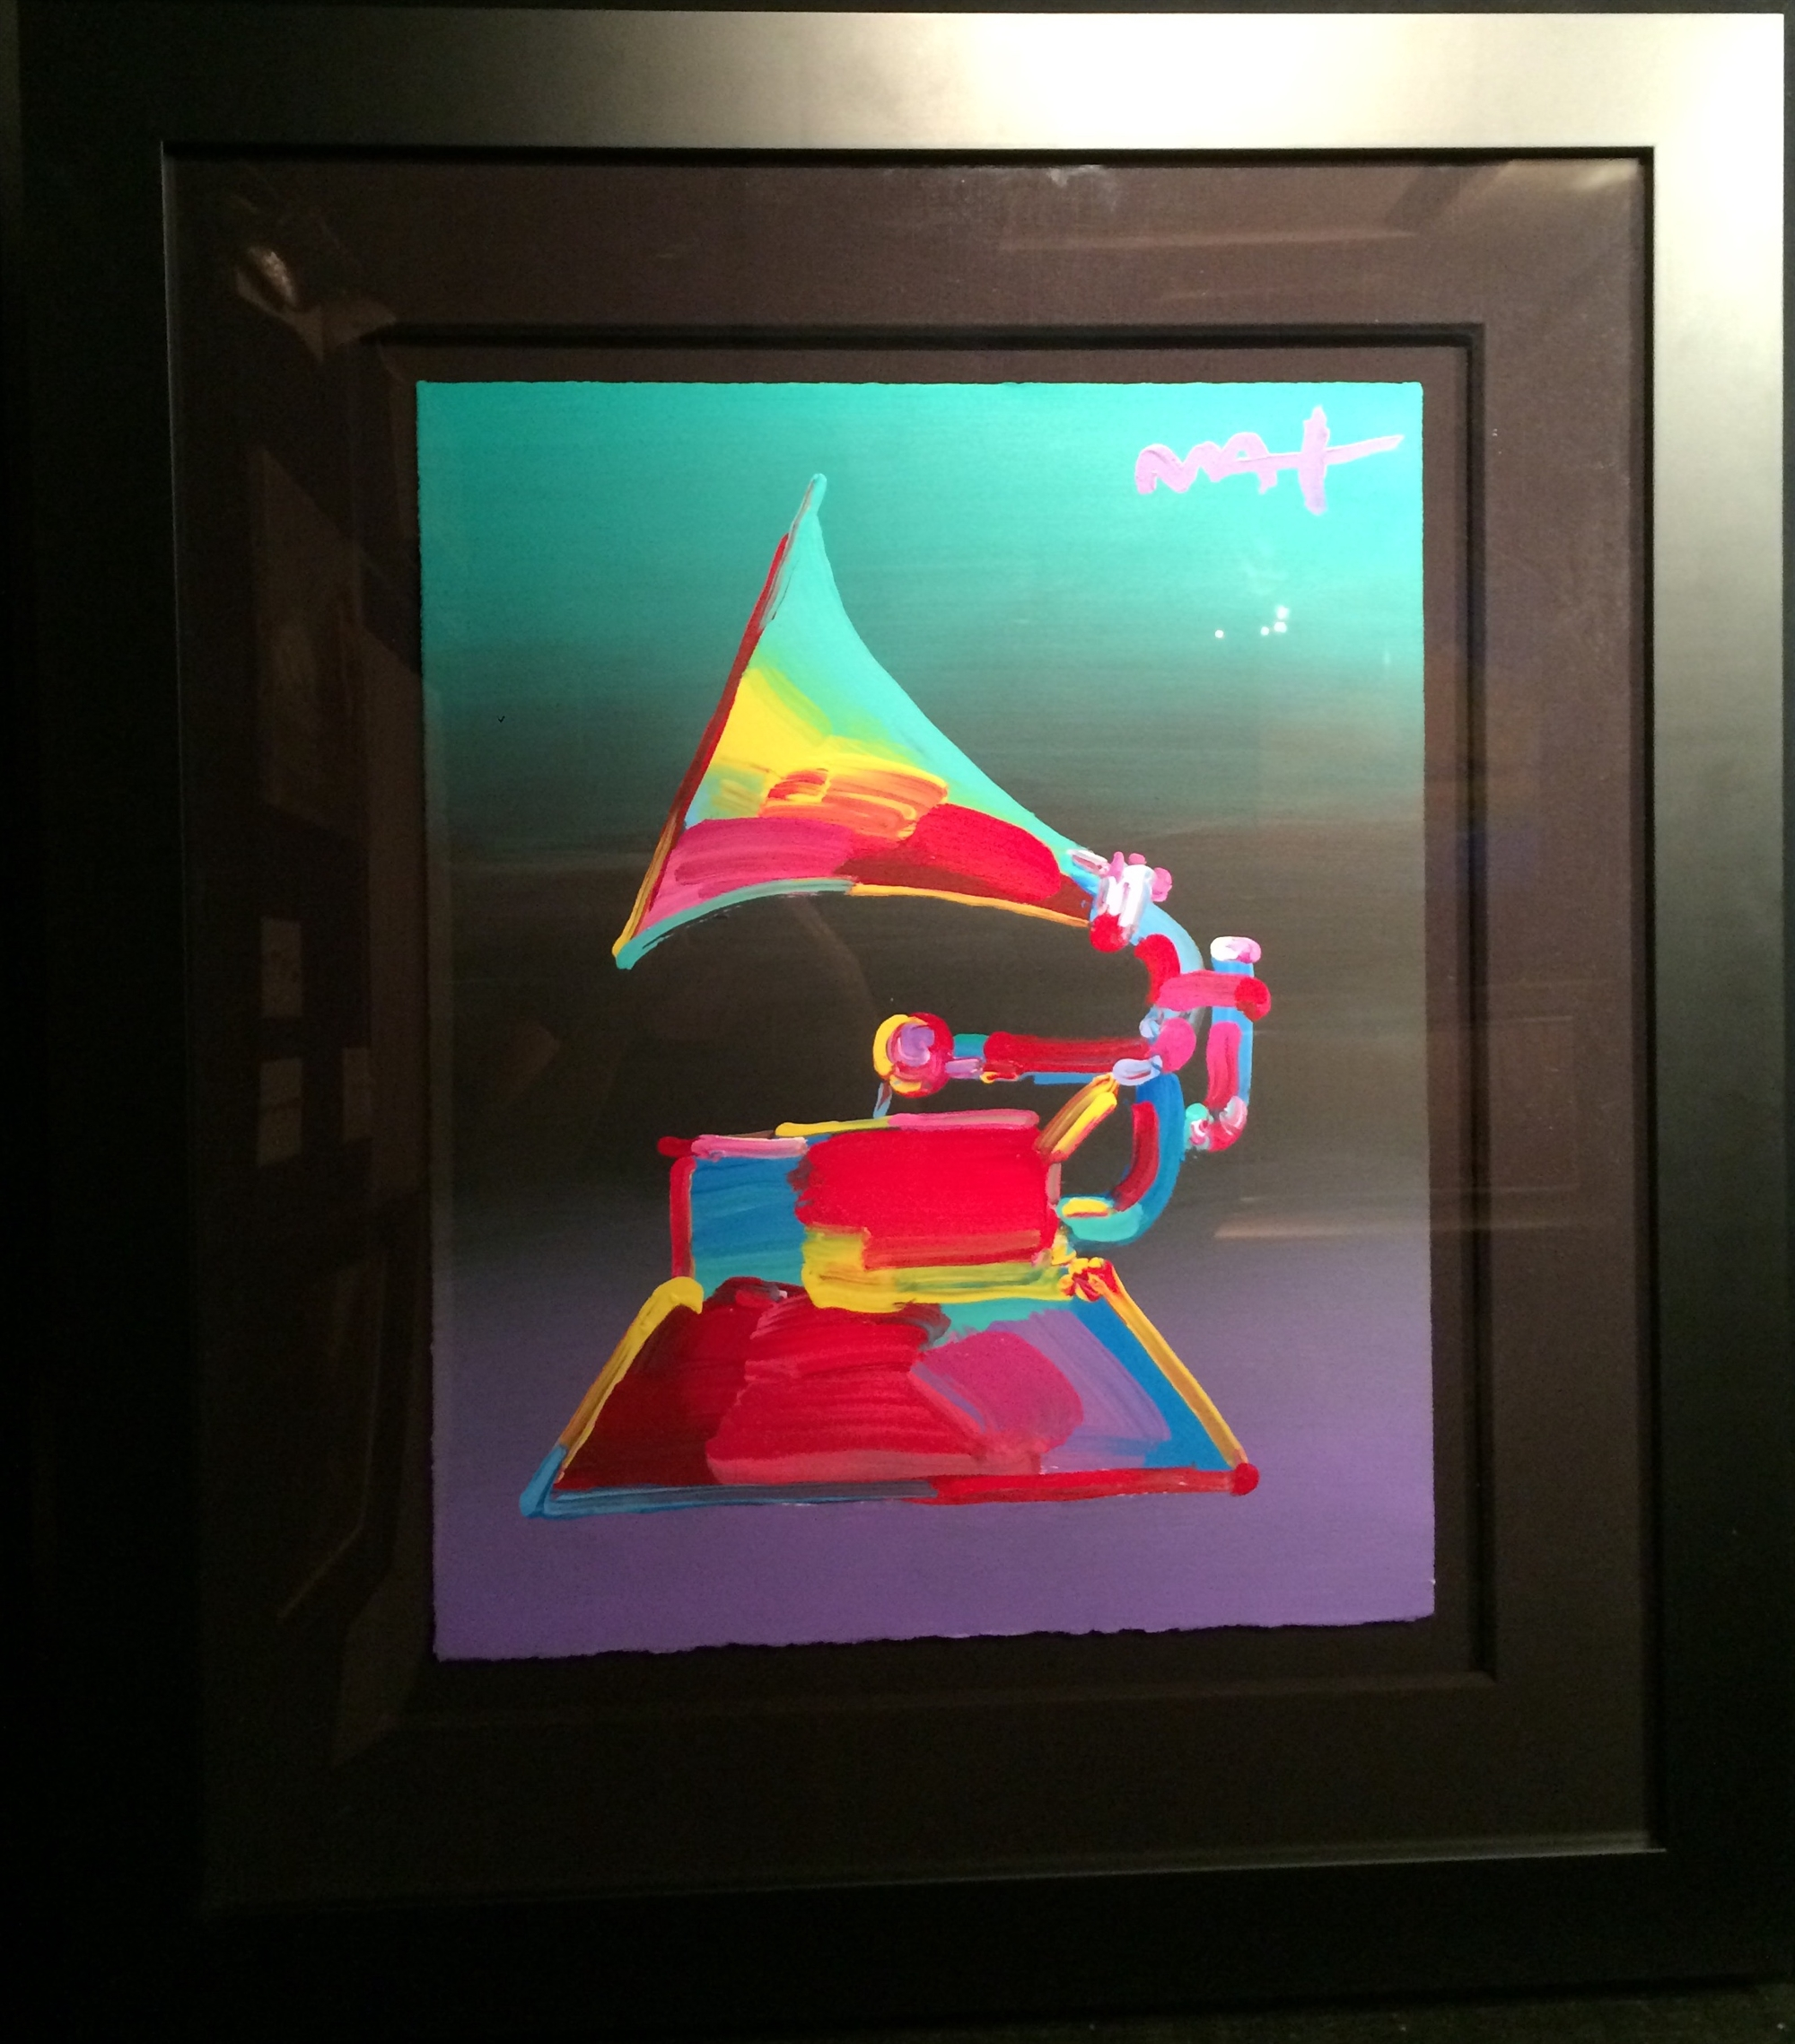 Grammy '89 by Peter Max